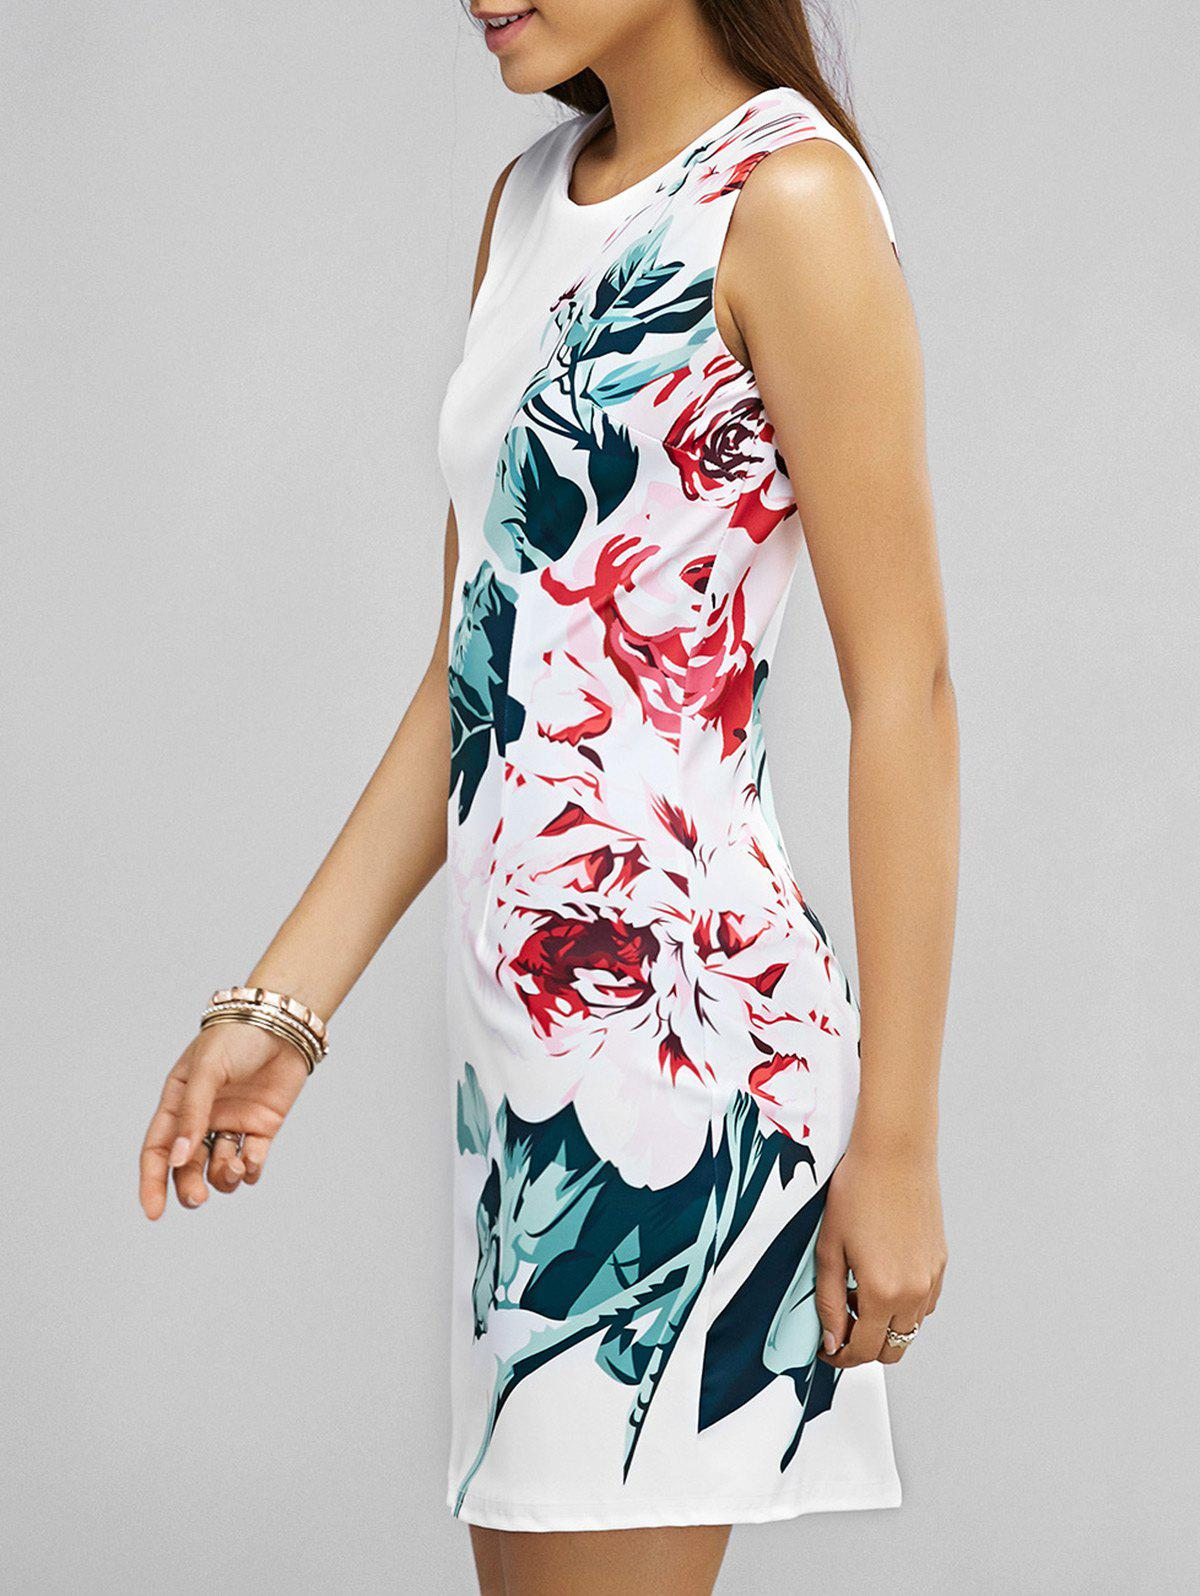 Printed Skinny Sleeveless Dress - WHITE XL